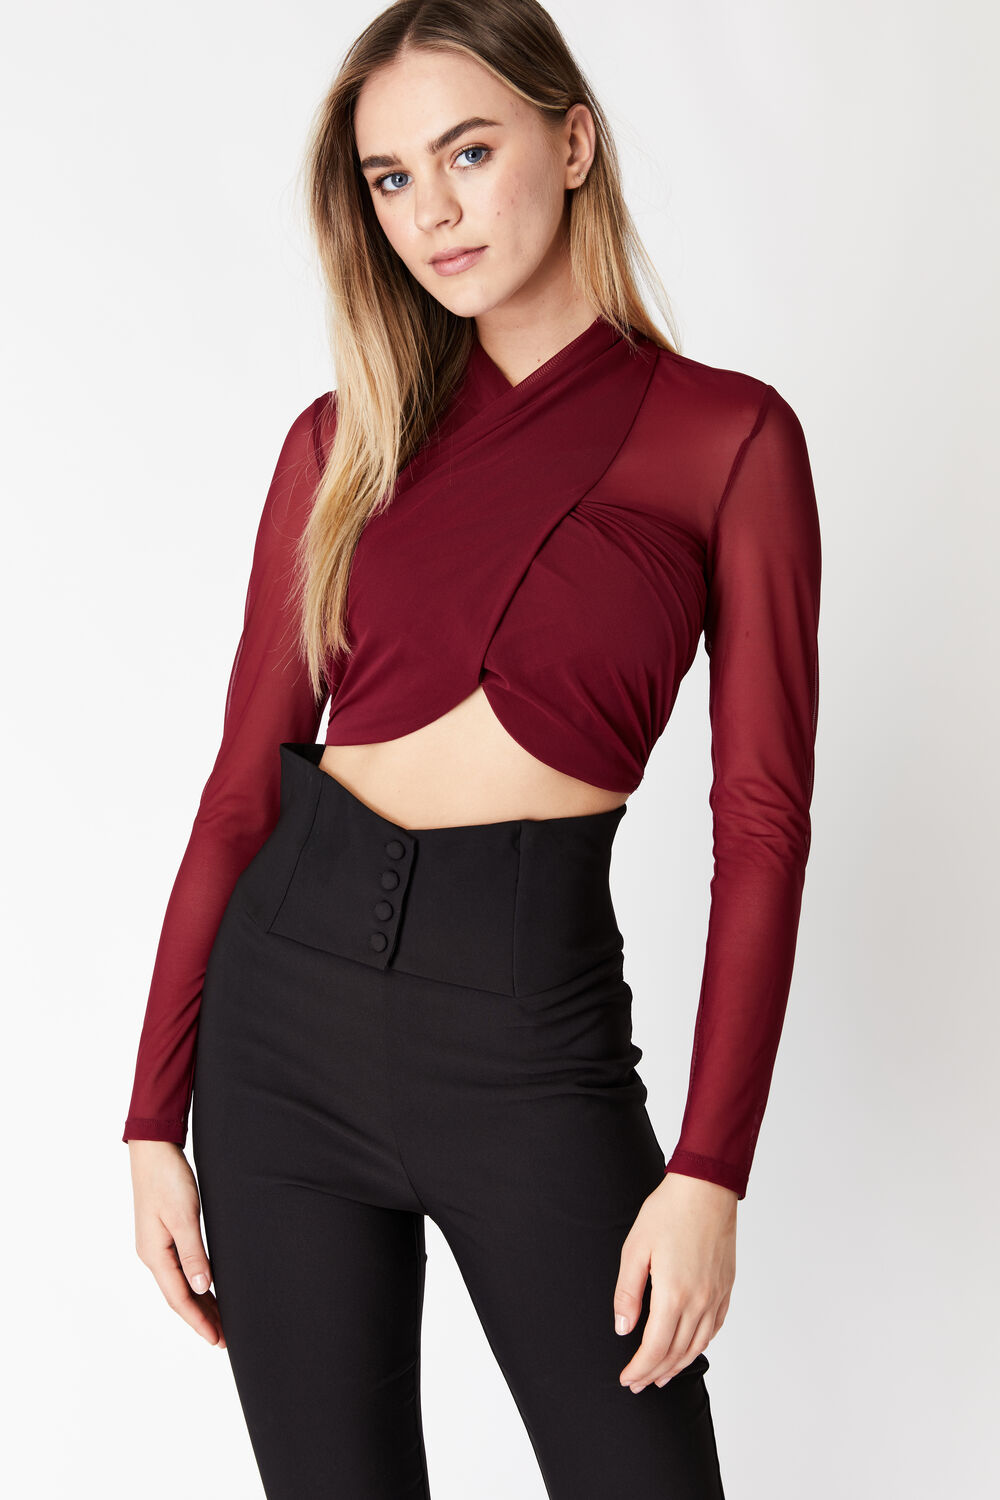 ALIYAH TOP in colour CHOCOLATE BROWN